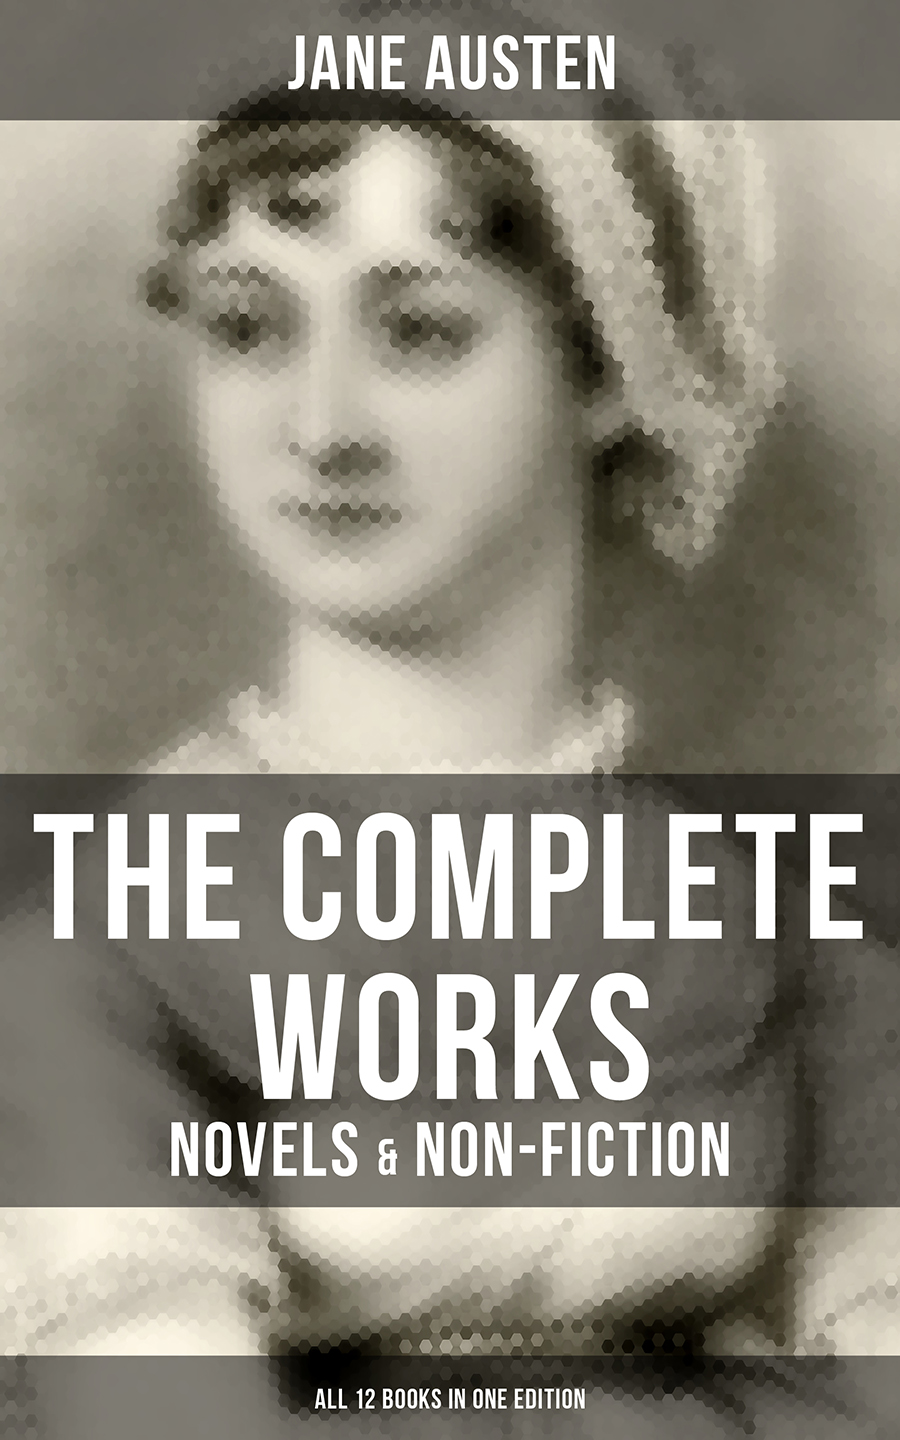 the complete works of jane austen novels non fiction all 12 books in one edition